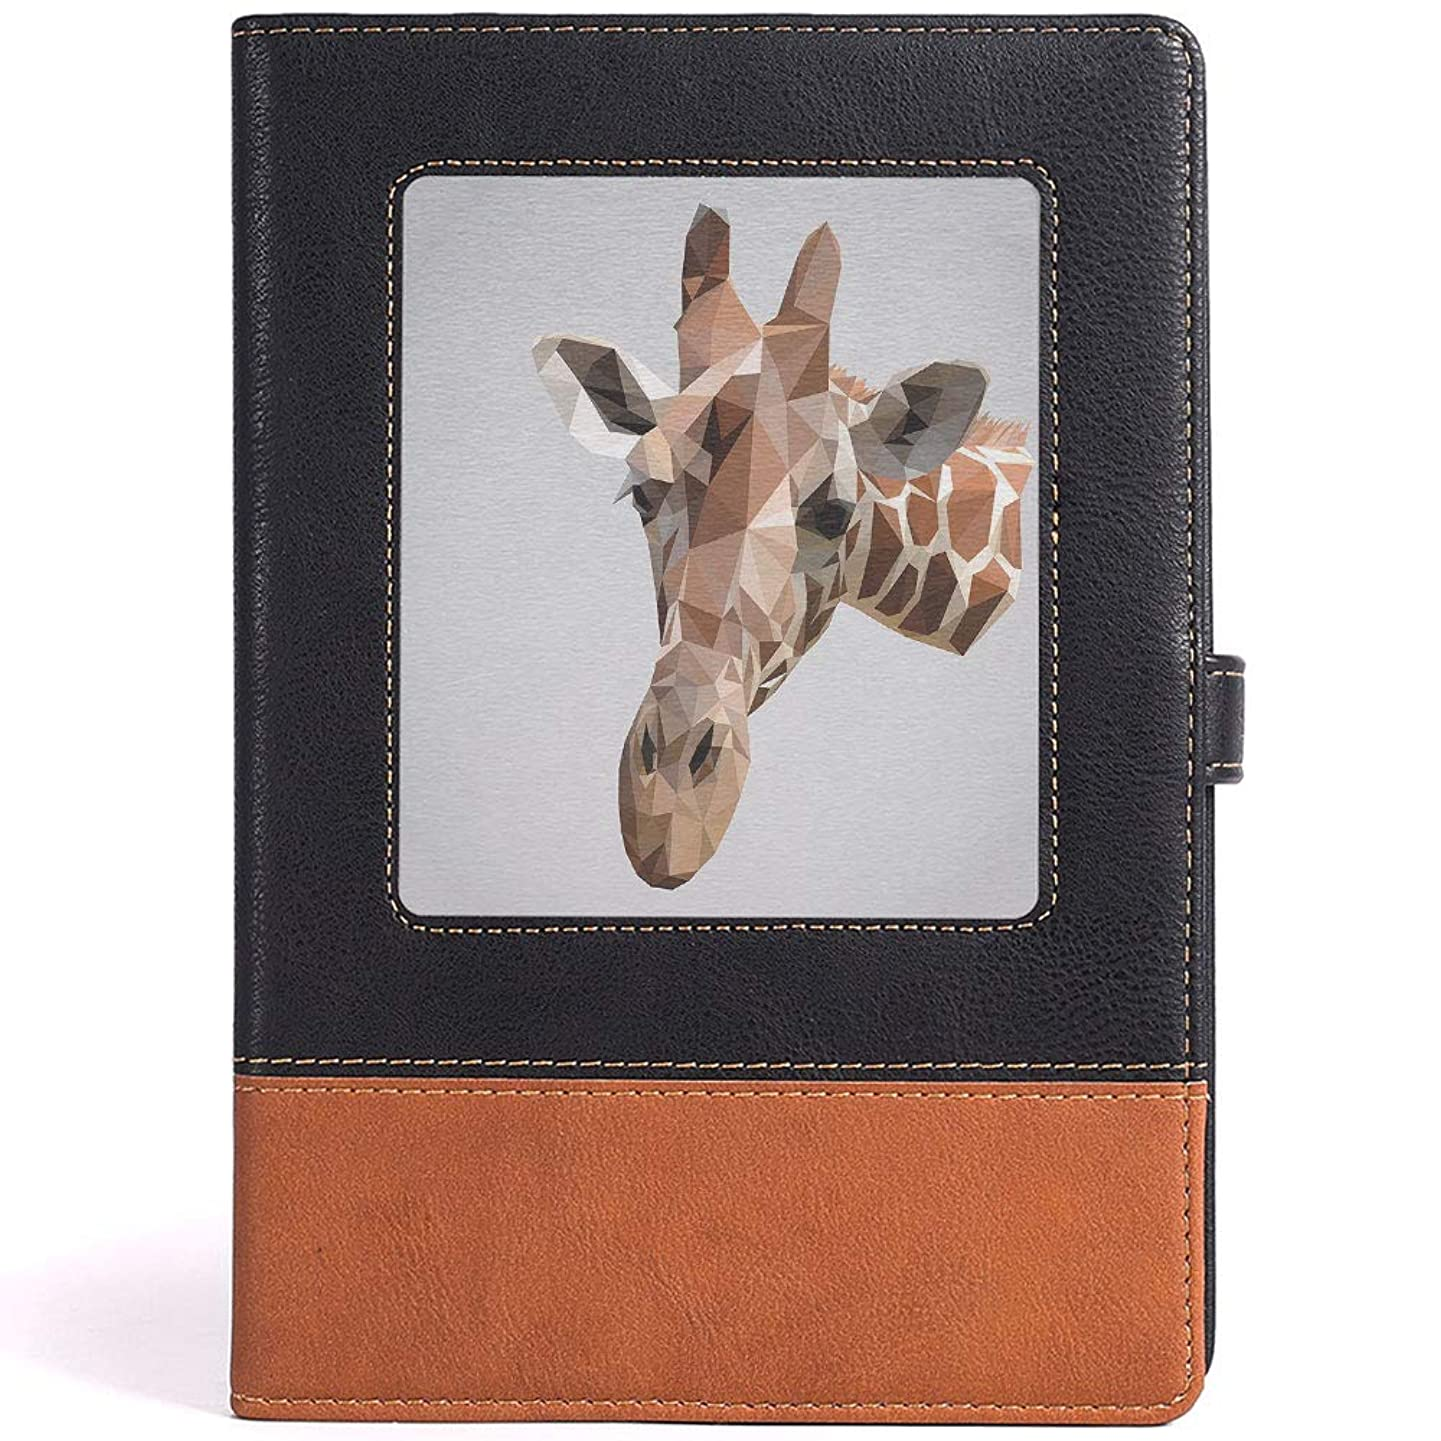 LEATHER JOURNAL Writing Notebook Animal Leather Notebook for Watercolor Painting,Size 6.1x8.6 in,A5